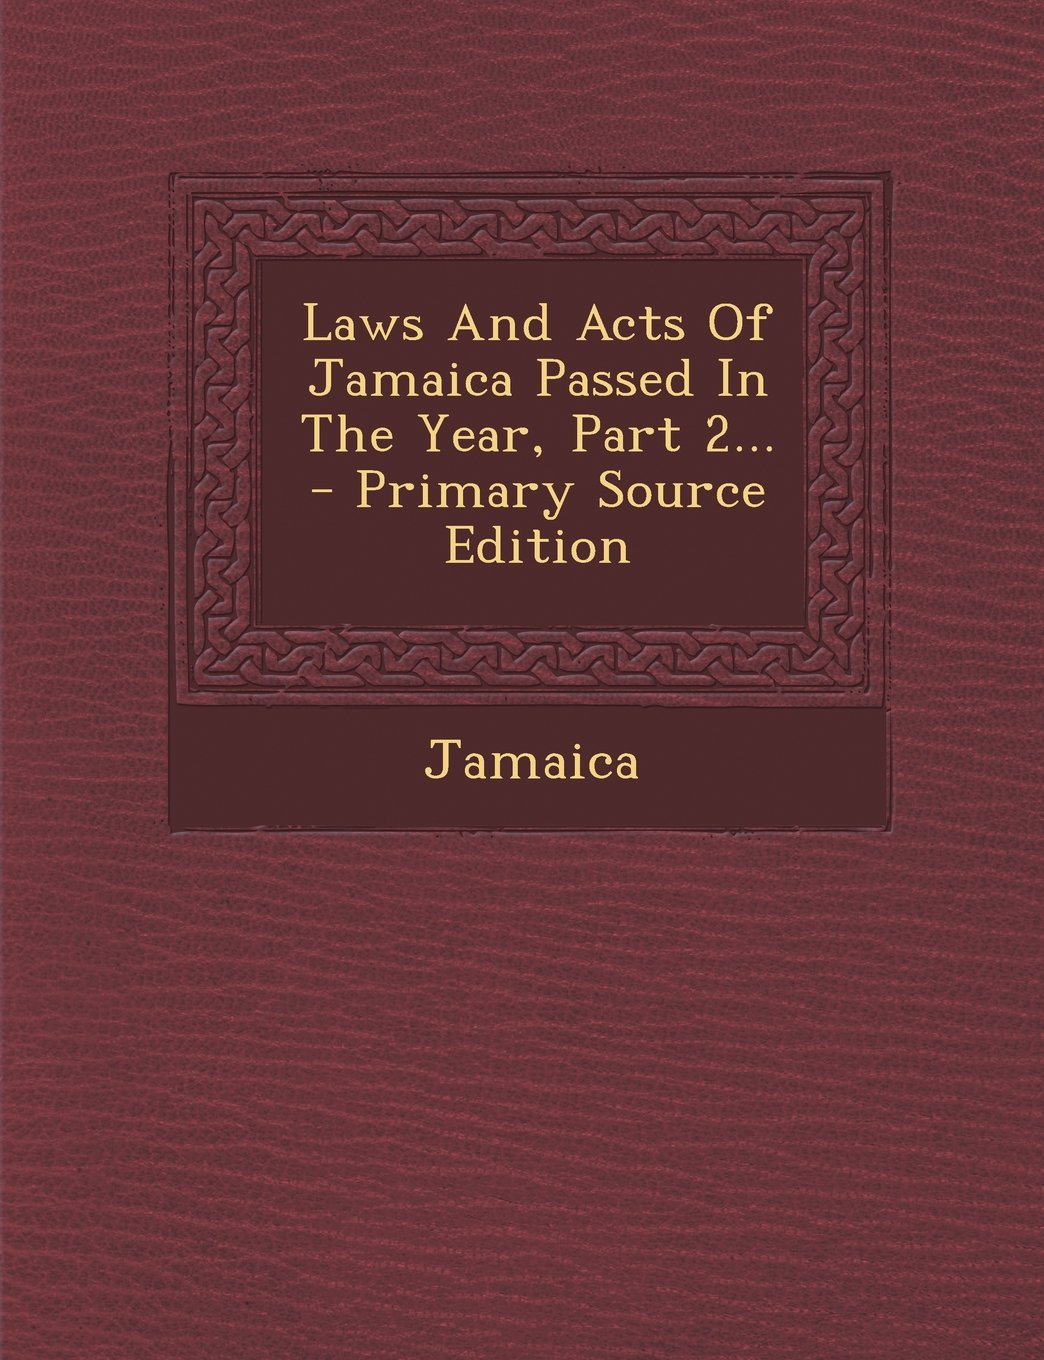 Laws And Acts Of Jamaica Passed In The Year, Part 2... - Primary Source Edition